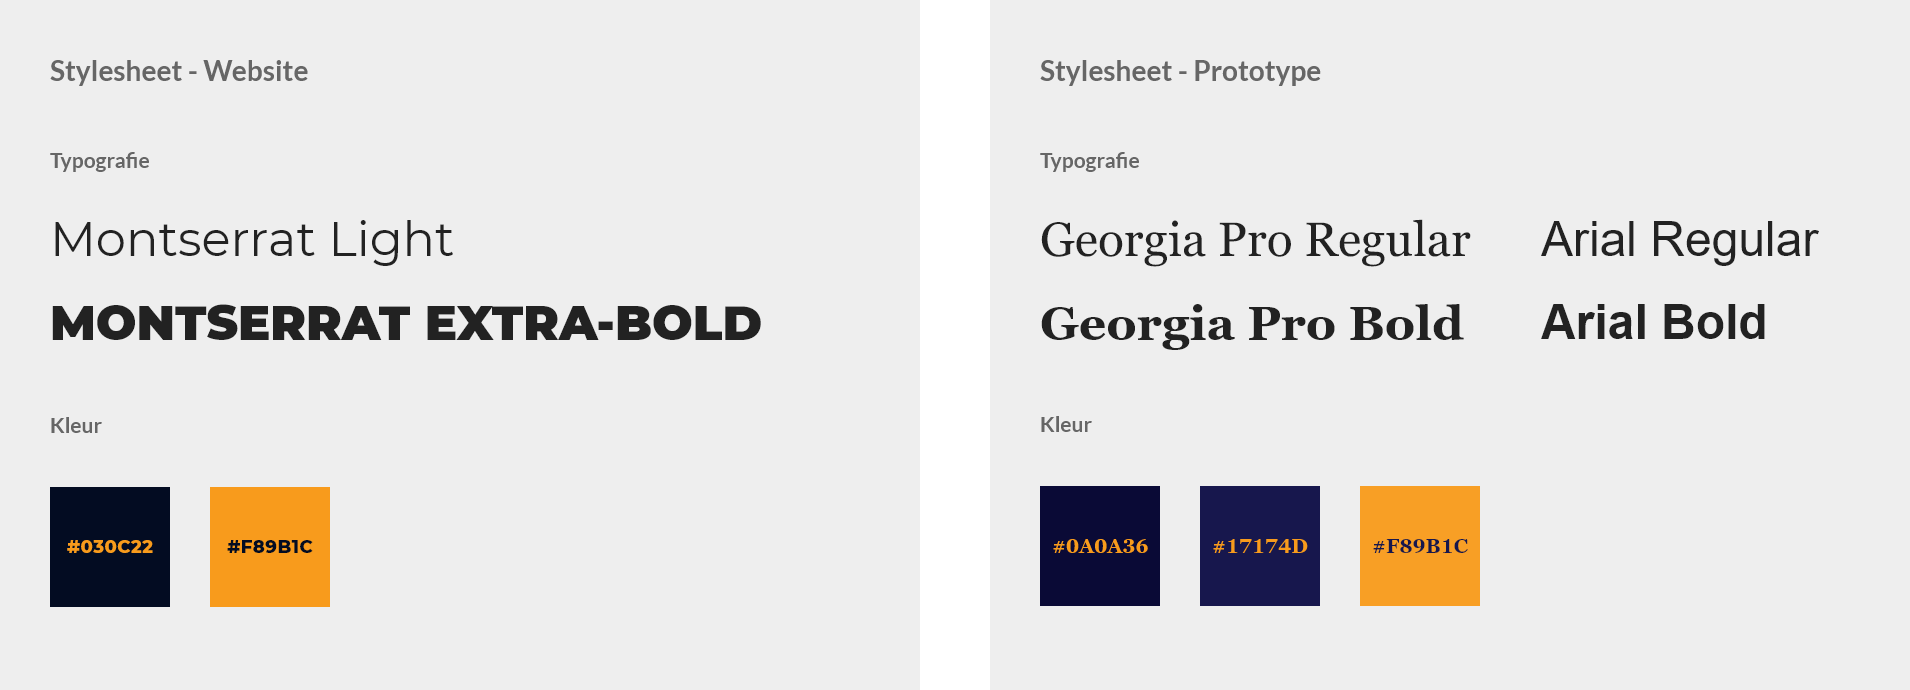 Left: the Lachende Javaan website stylesheet. Right: the proposed stylesheet for my prototype.